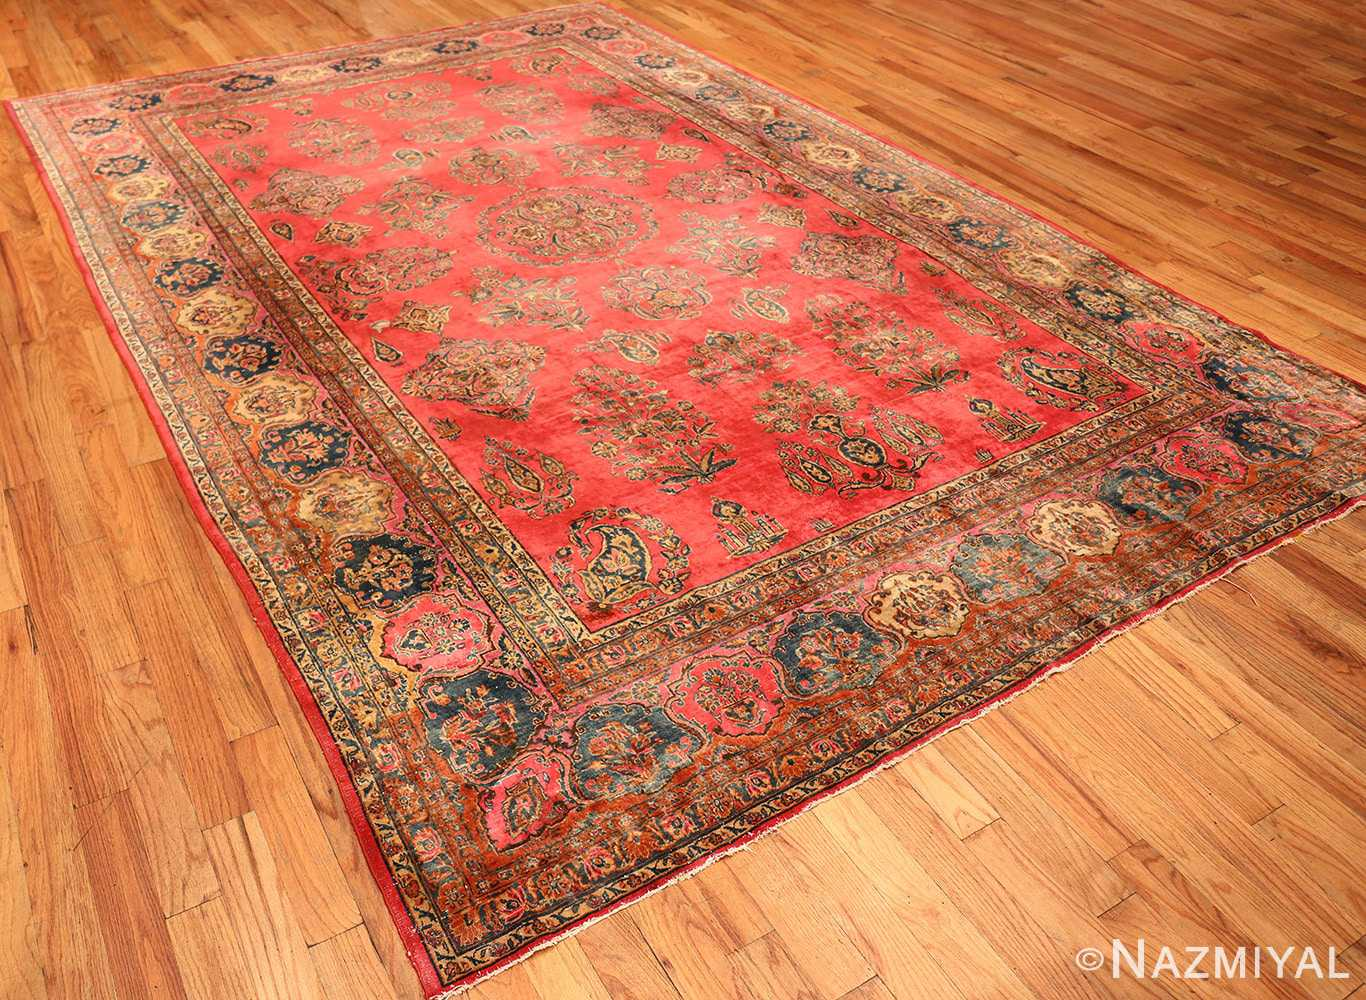 Red Room Size Antique Persian Kashan Rug #49905 from Nazmiyal Antique Rugs in NYC